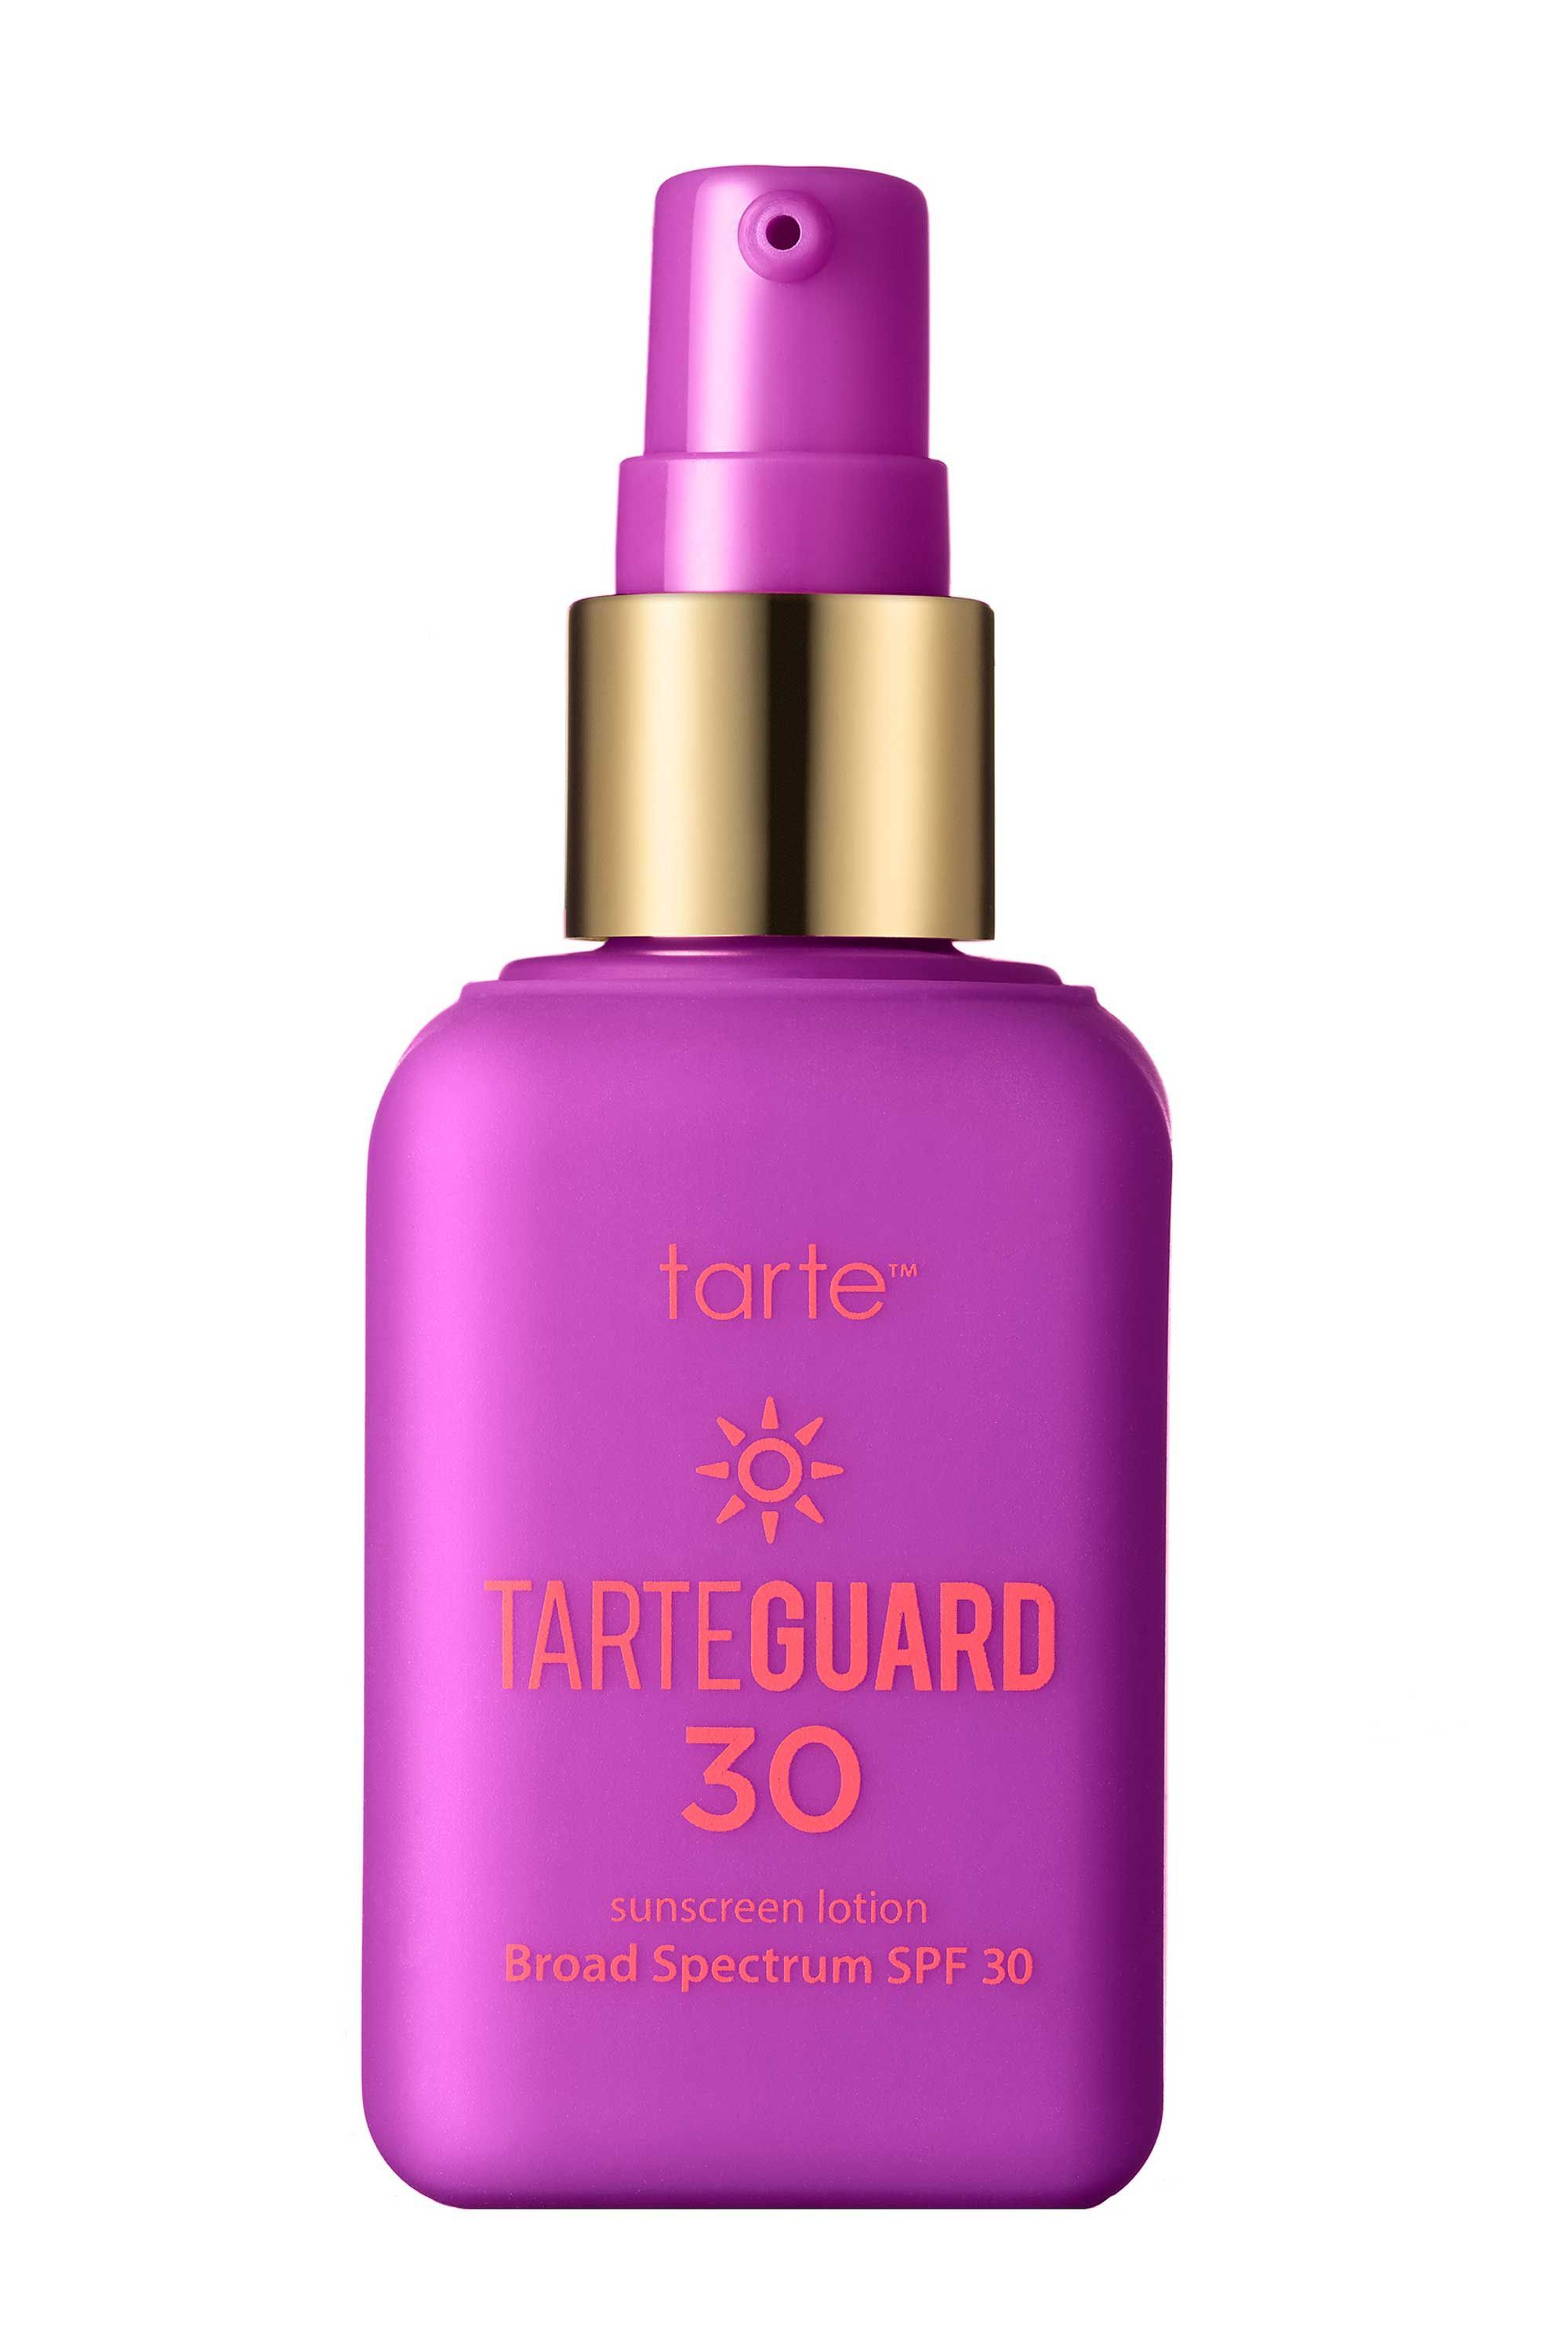 This titanium dioxidebased sunscreen also contains good